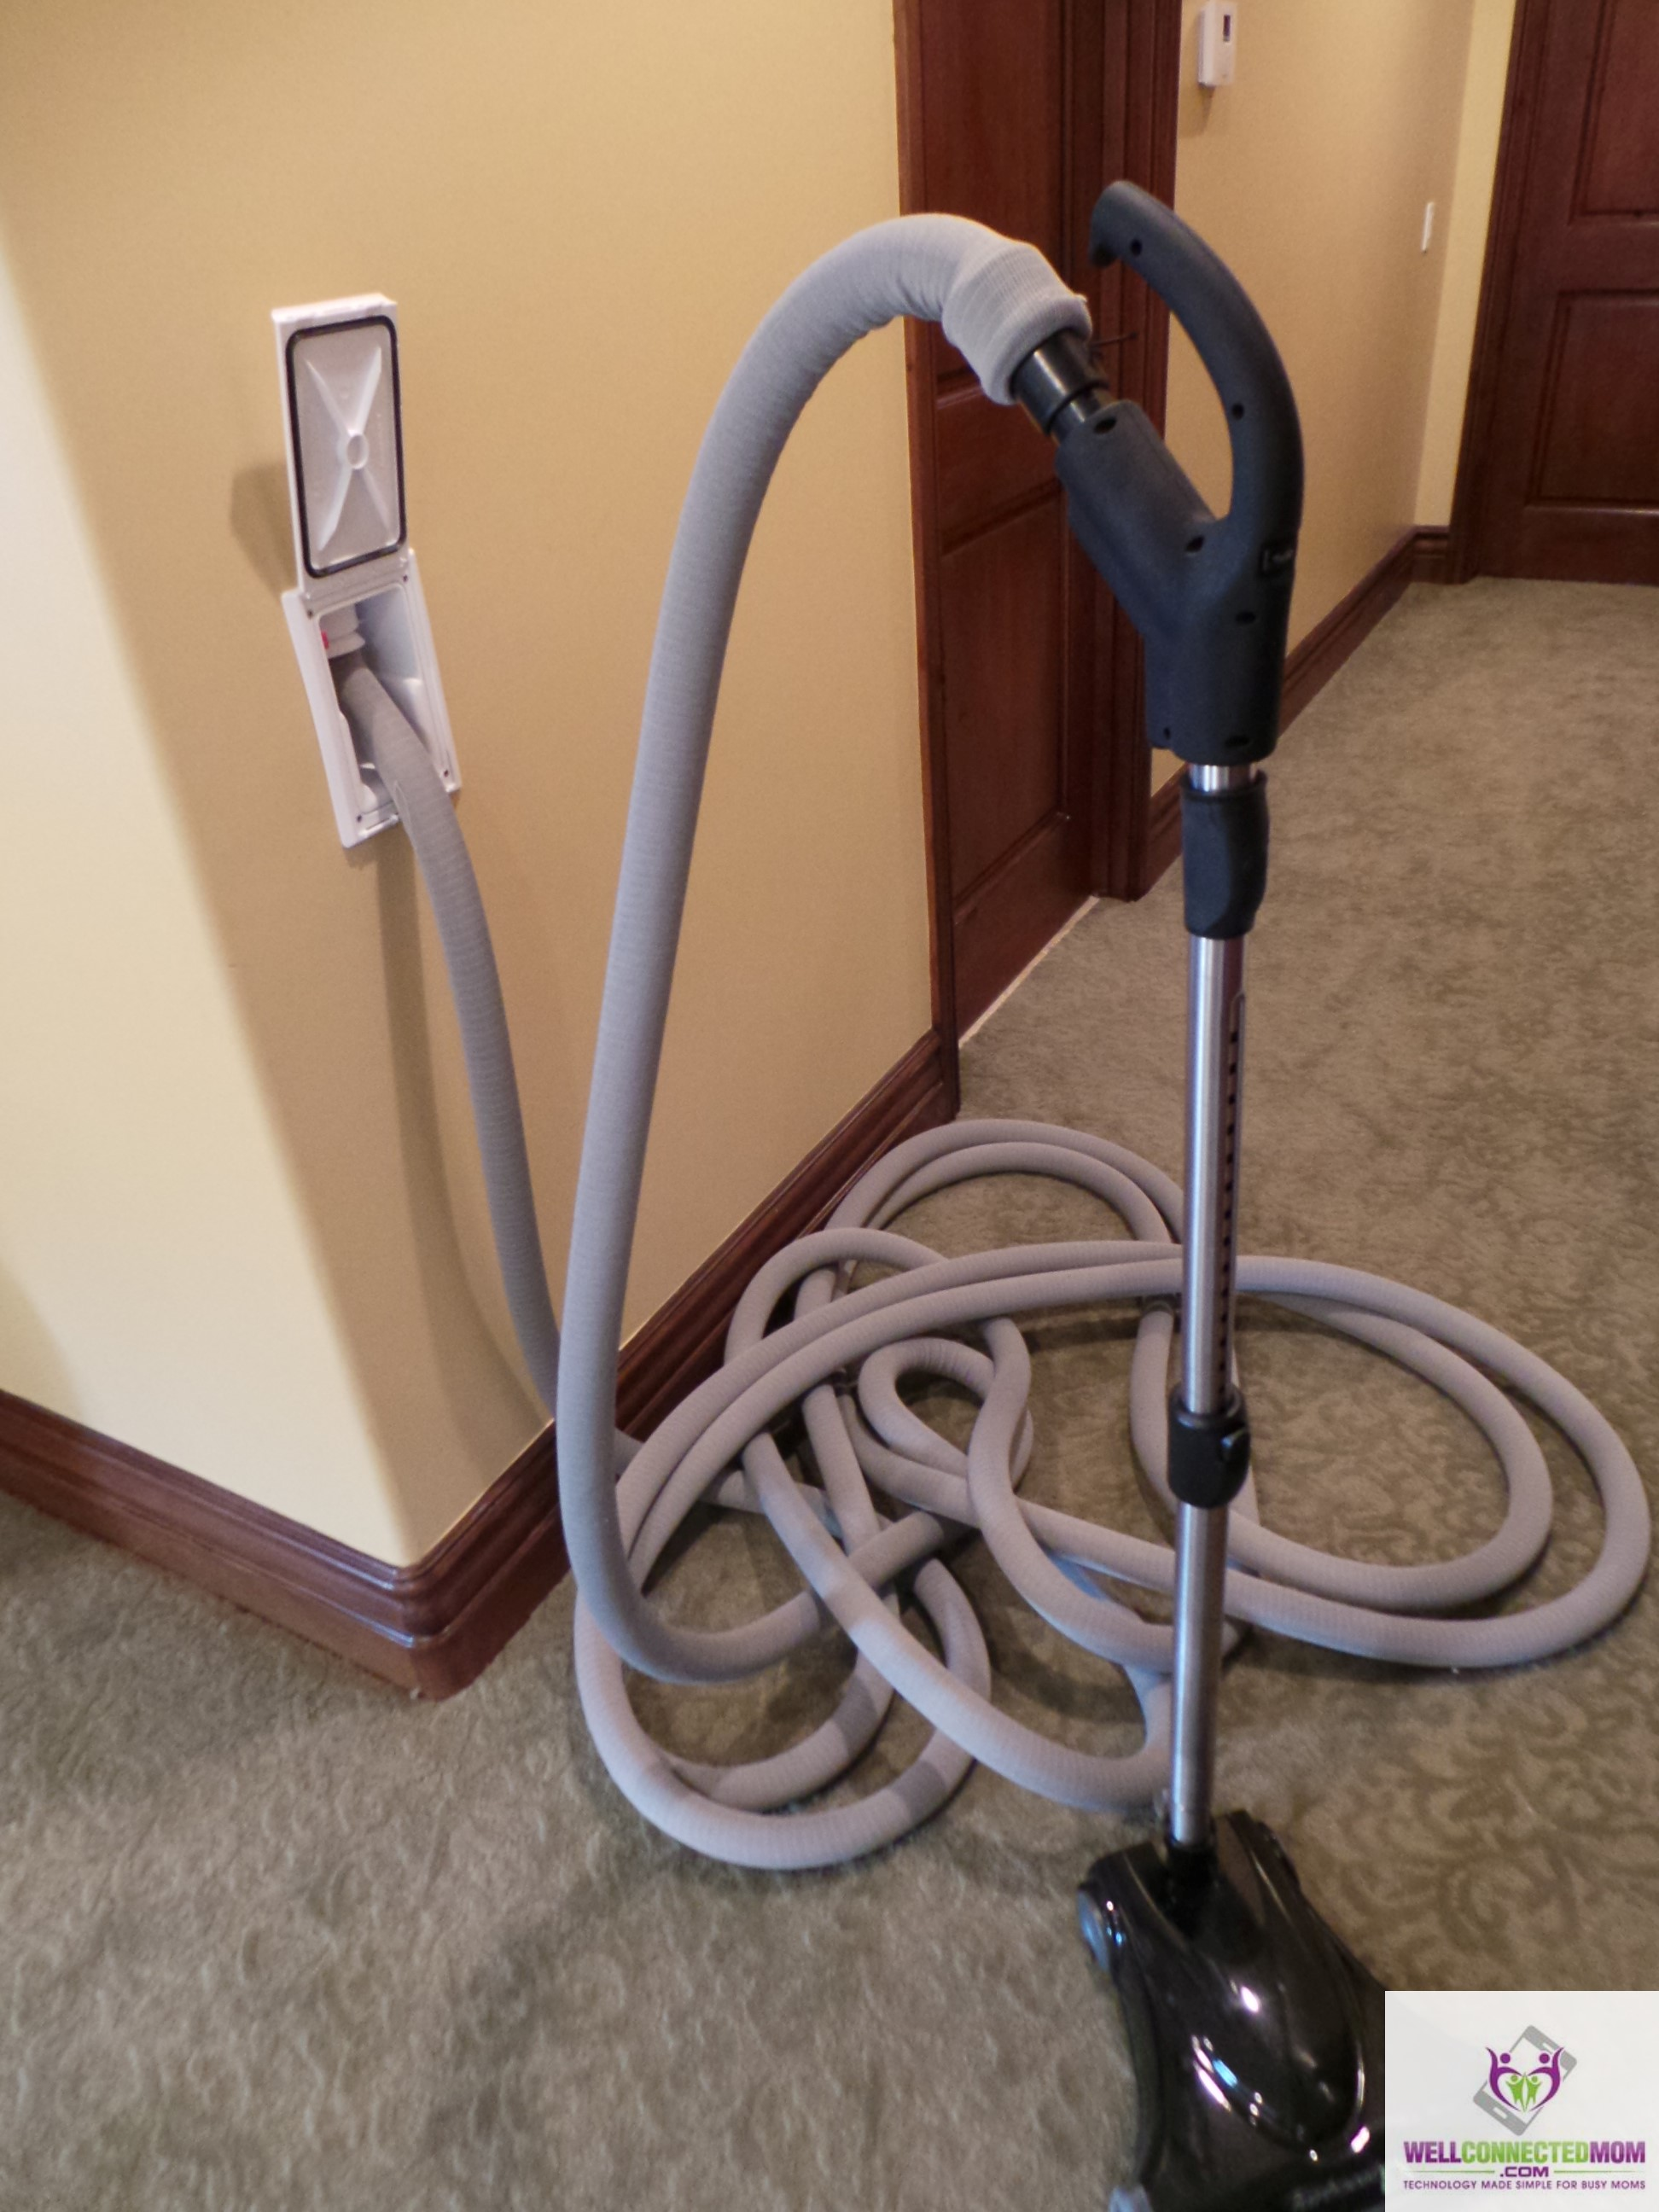 Why My Family Loves Our Central Vacuum The Well